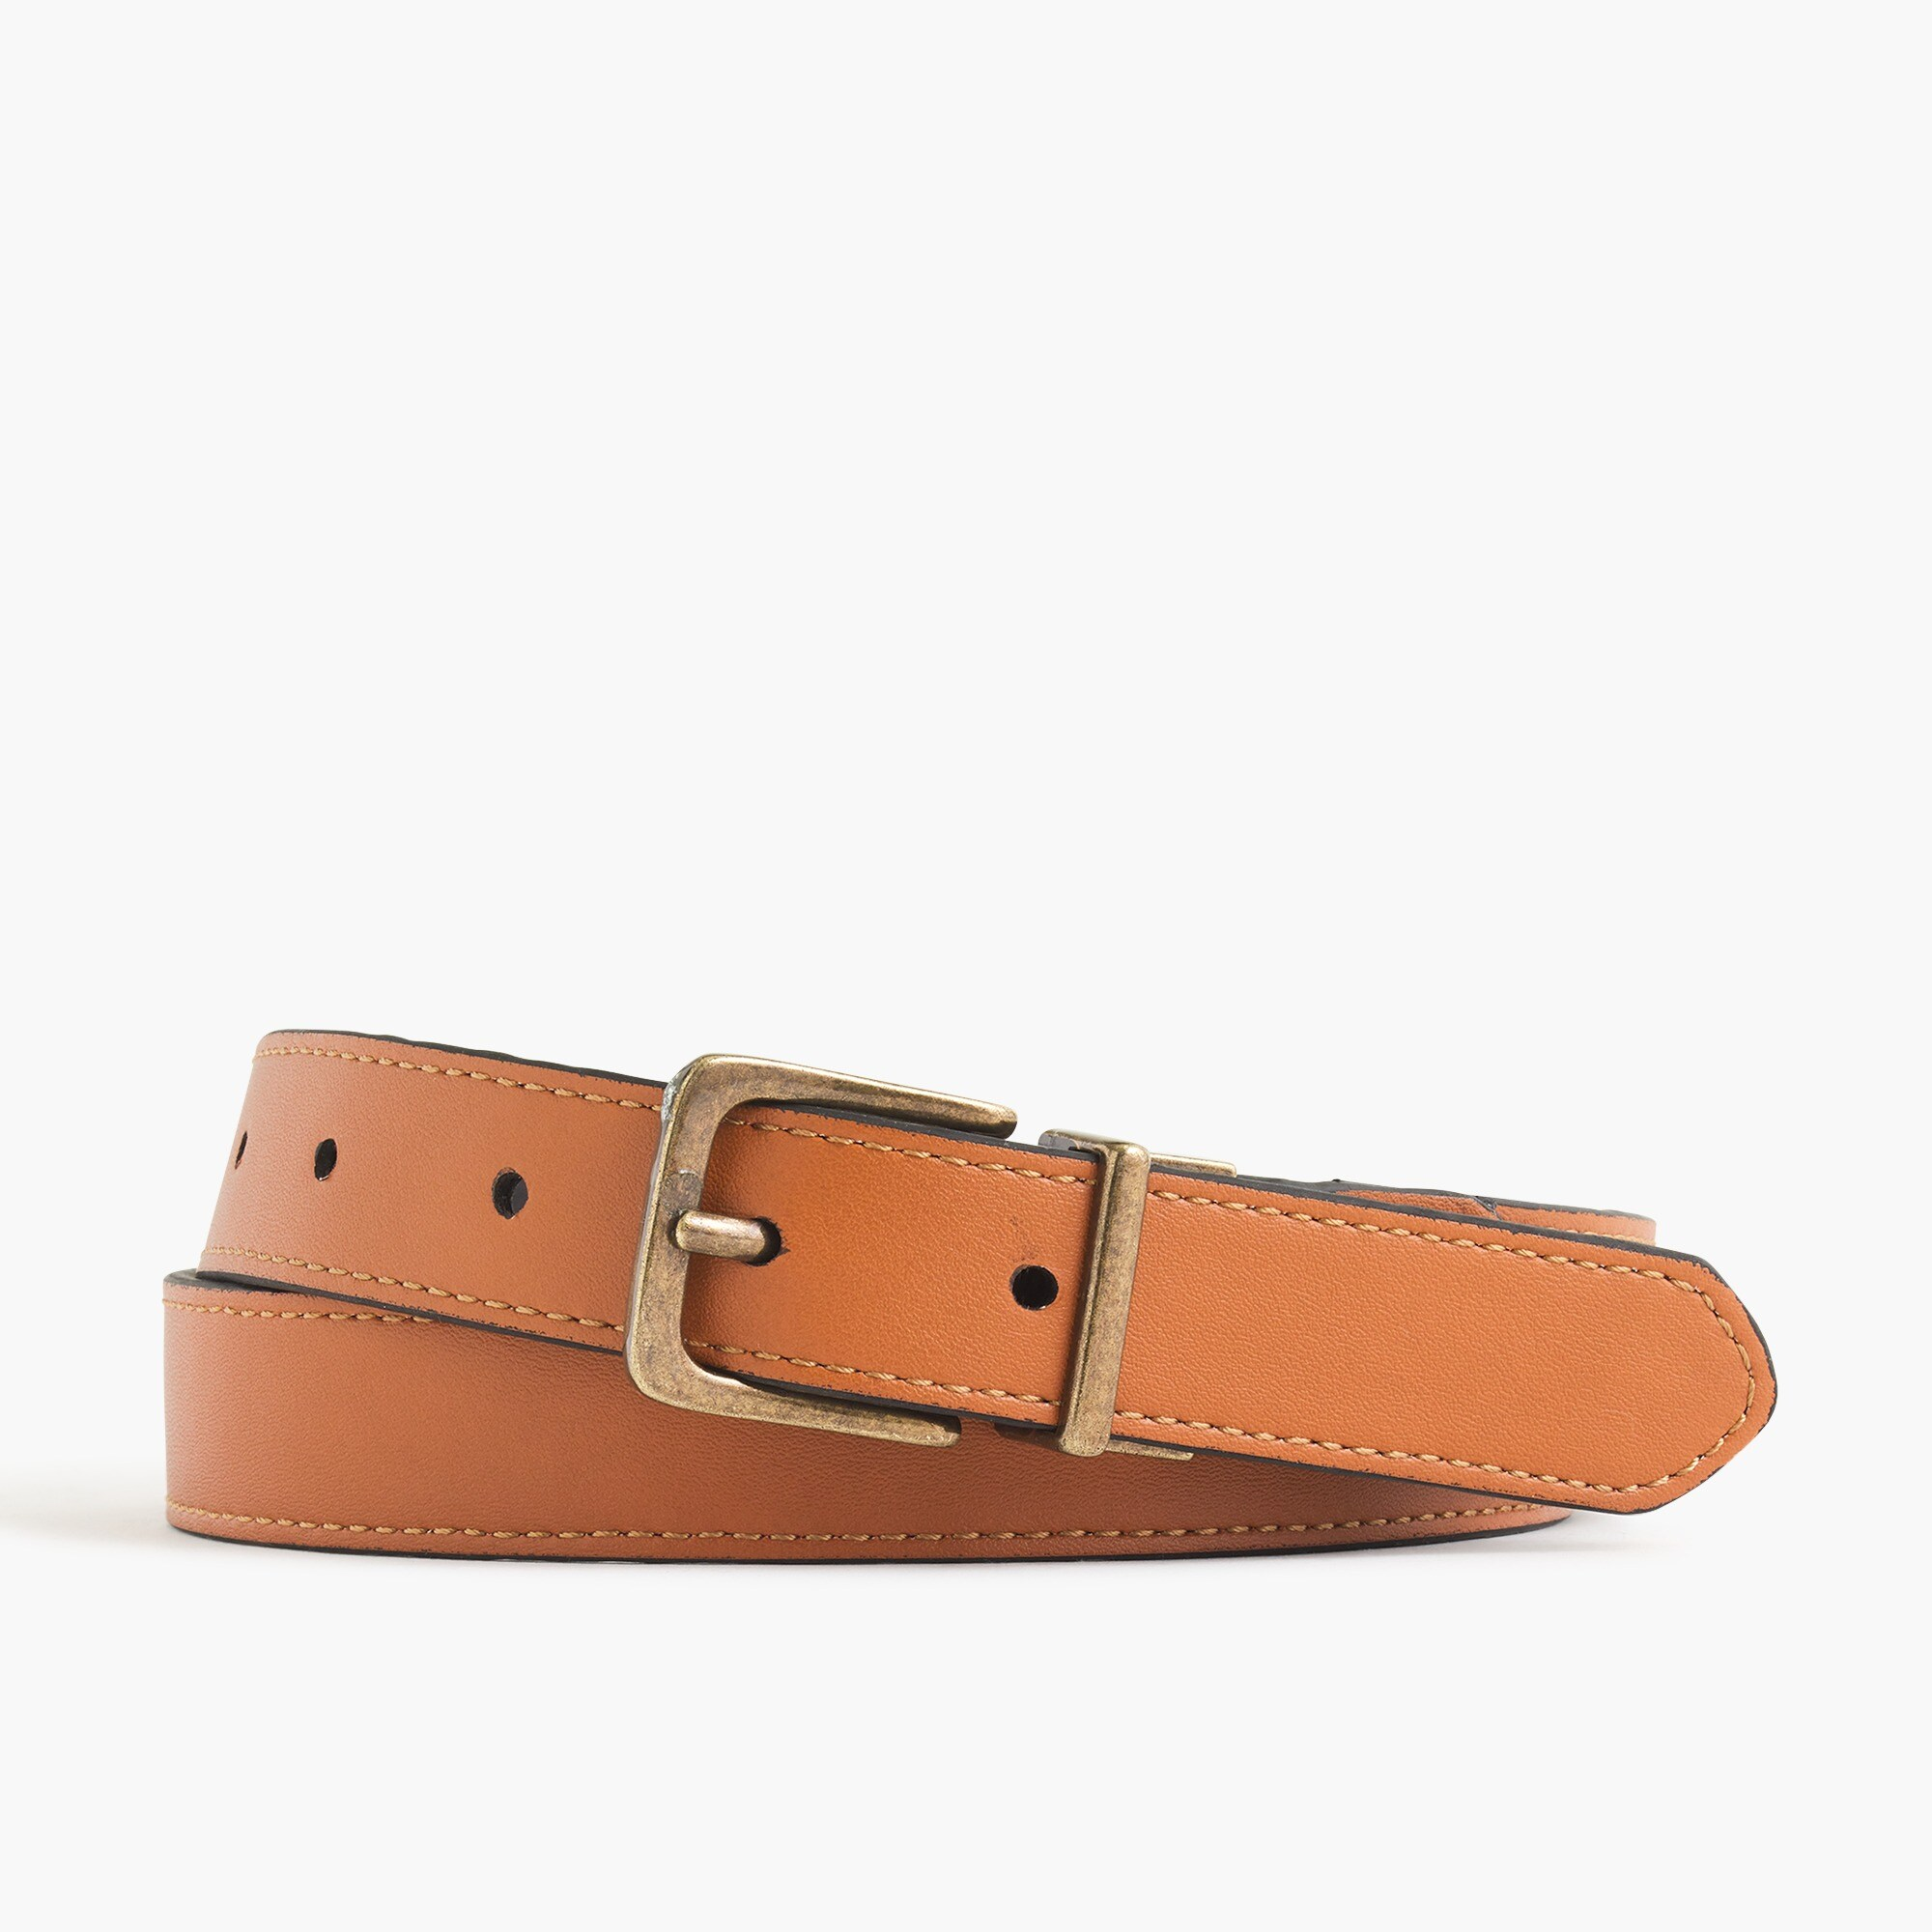 Image 2 for Boys' reversible belt